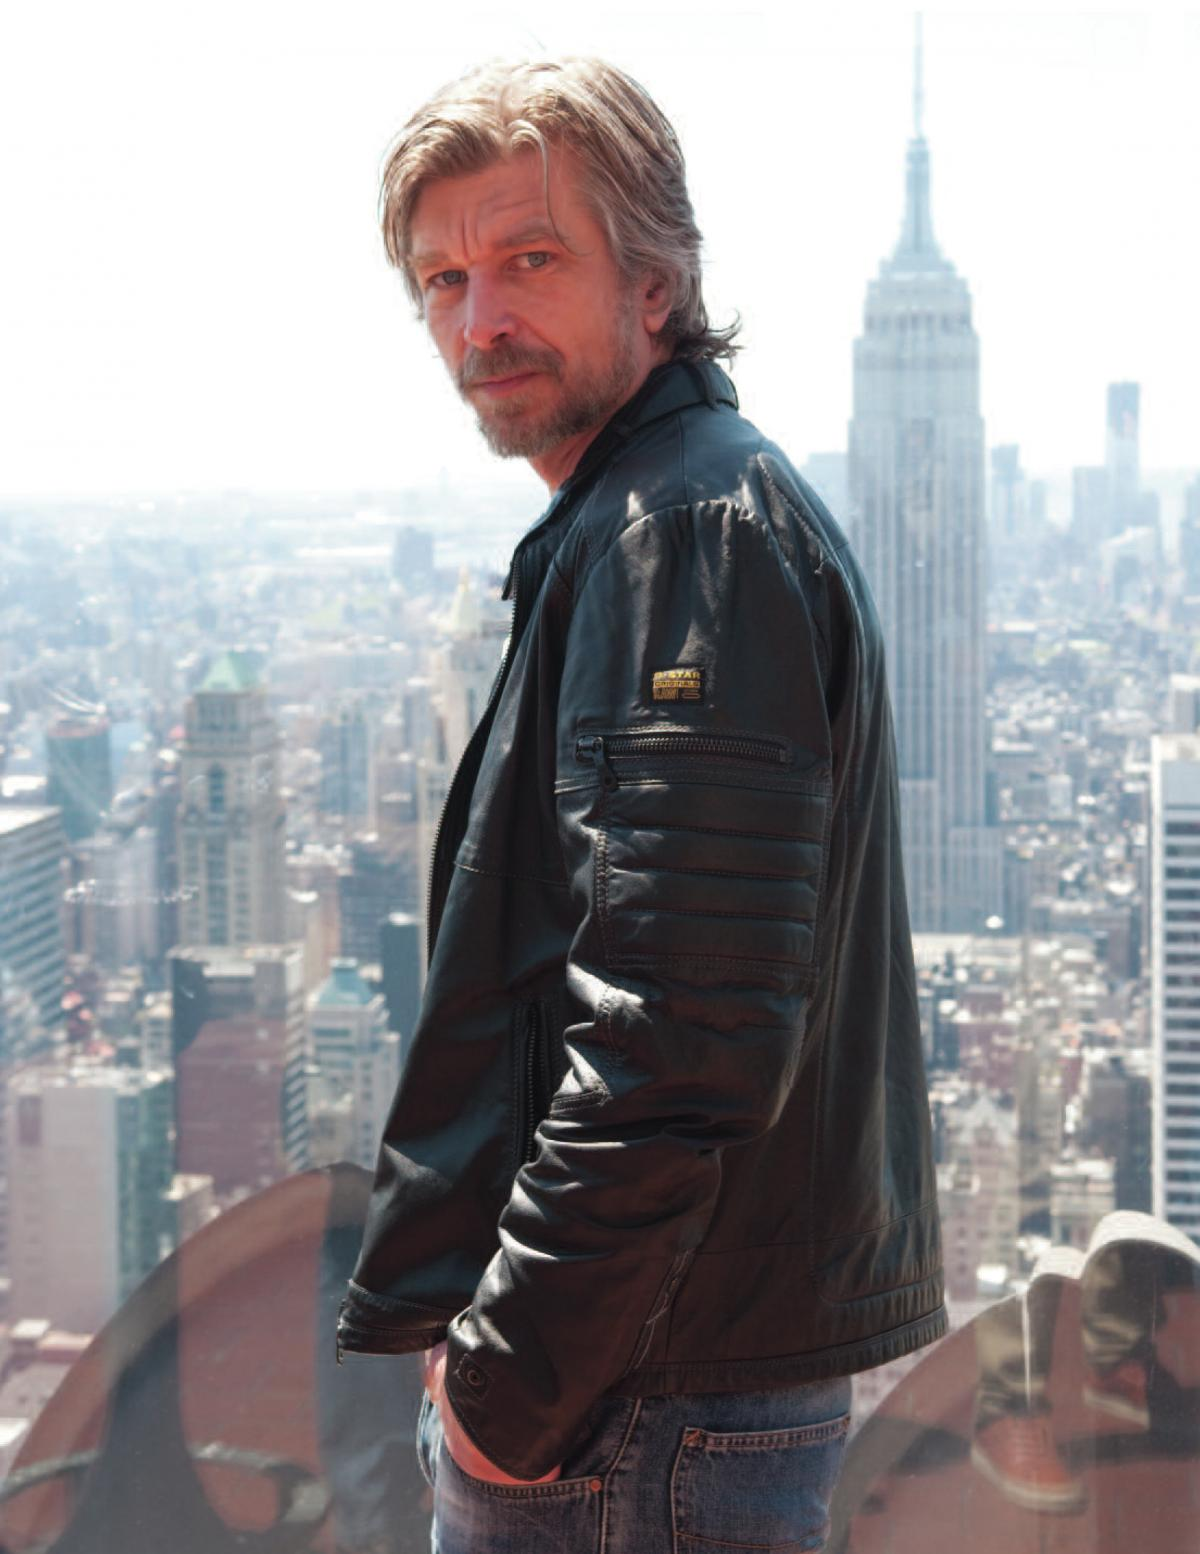 Karl Ove Knausgaard, a 46-year-old Norwegian, has written a six-volume, 3,600-page autobiographical novel, My Struggle.